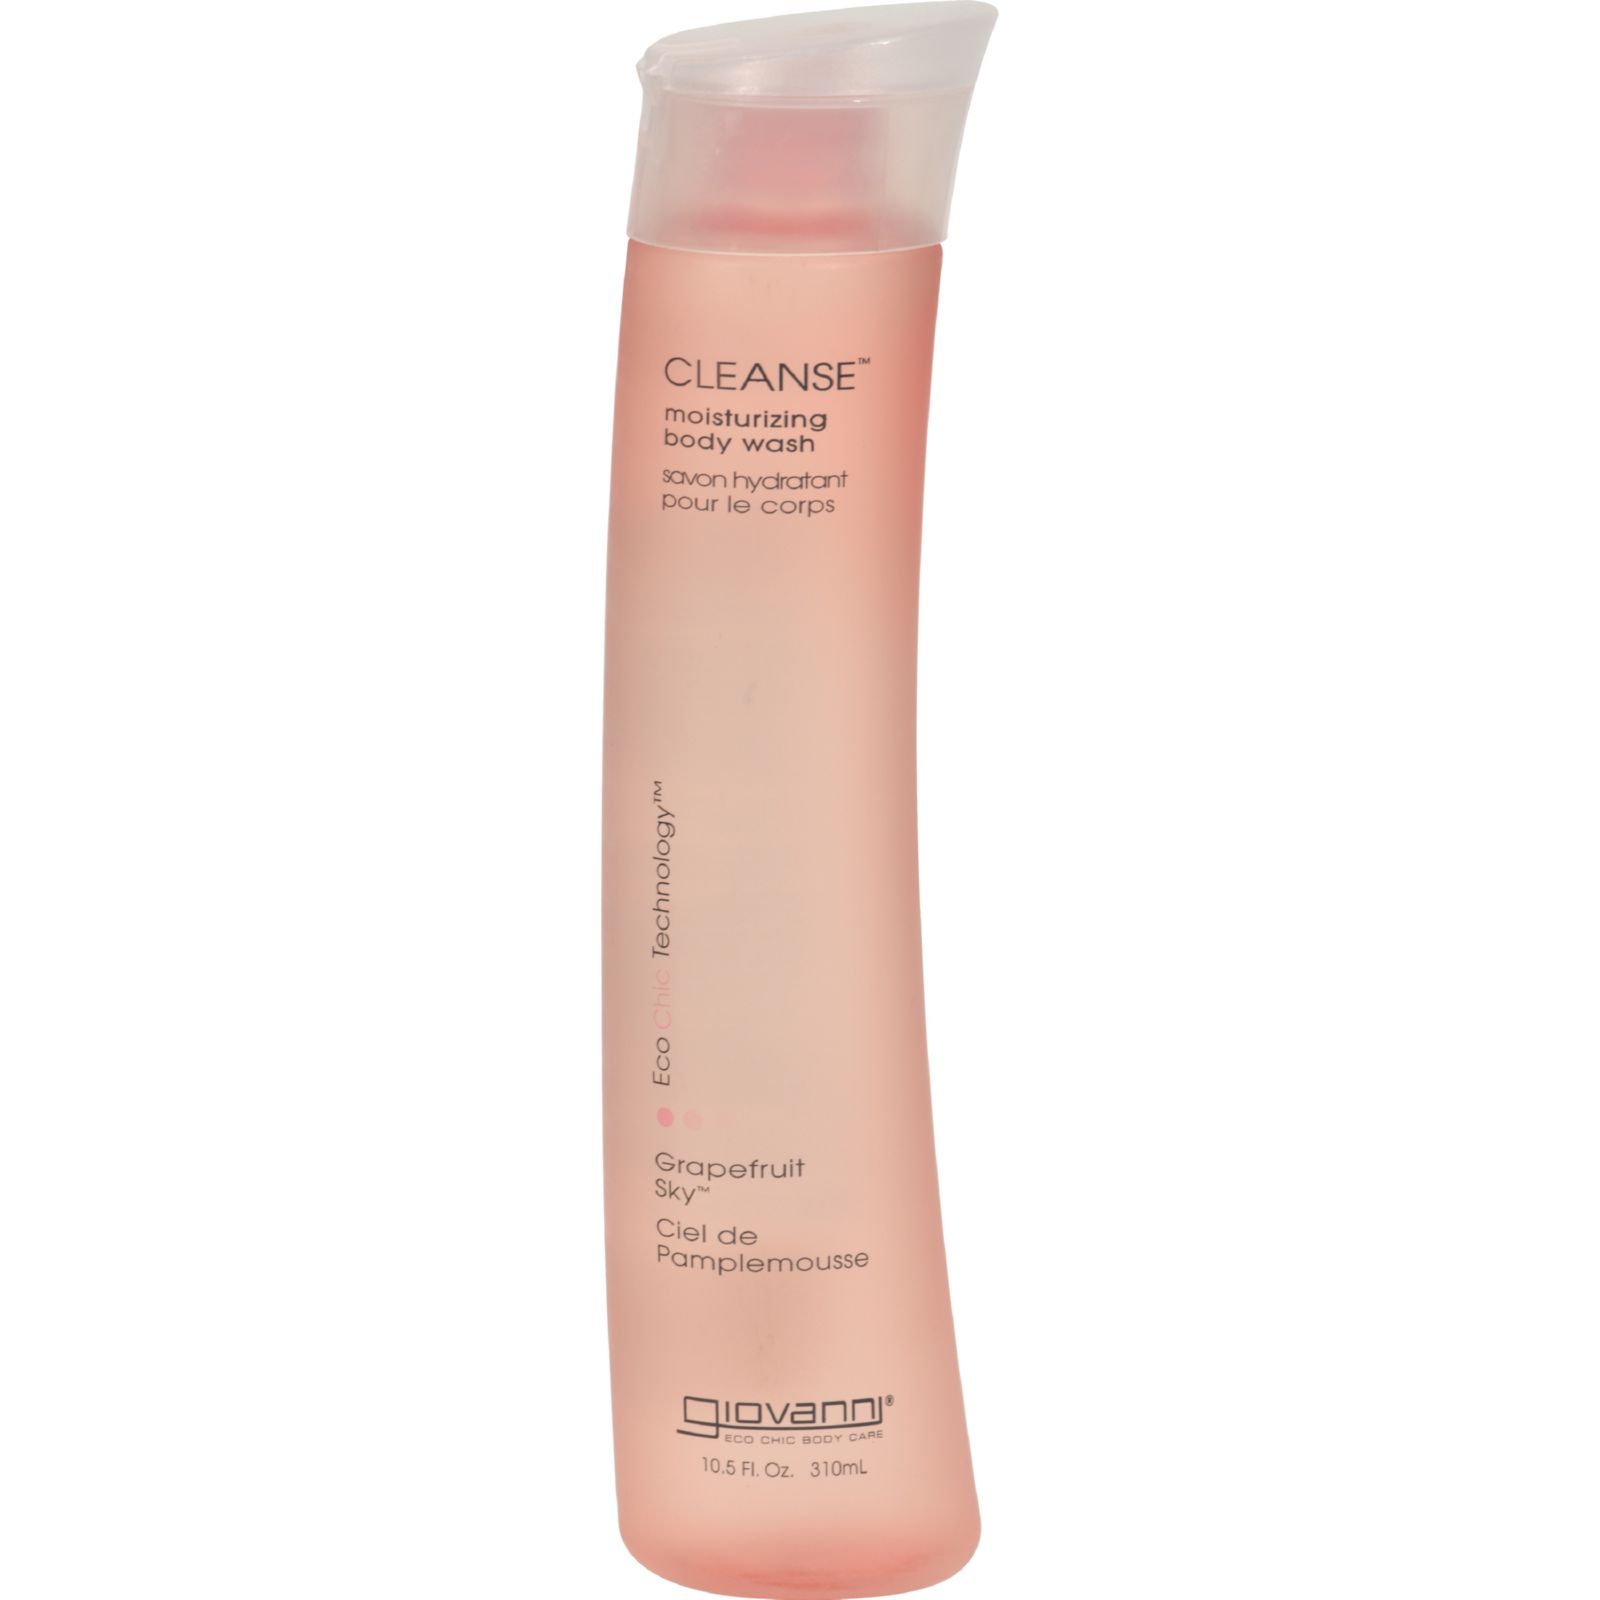 Giovanni Cleanse Body Wash Grapefruit Sky - 10.5 fl oz